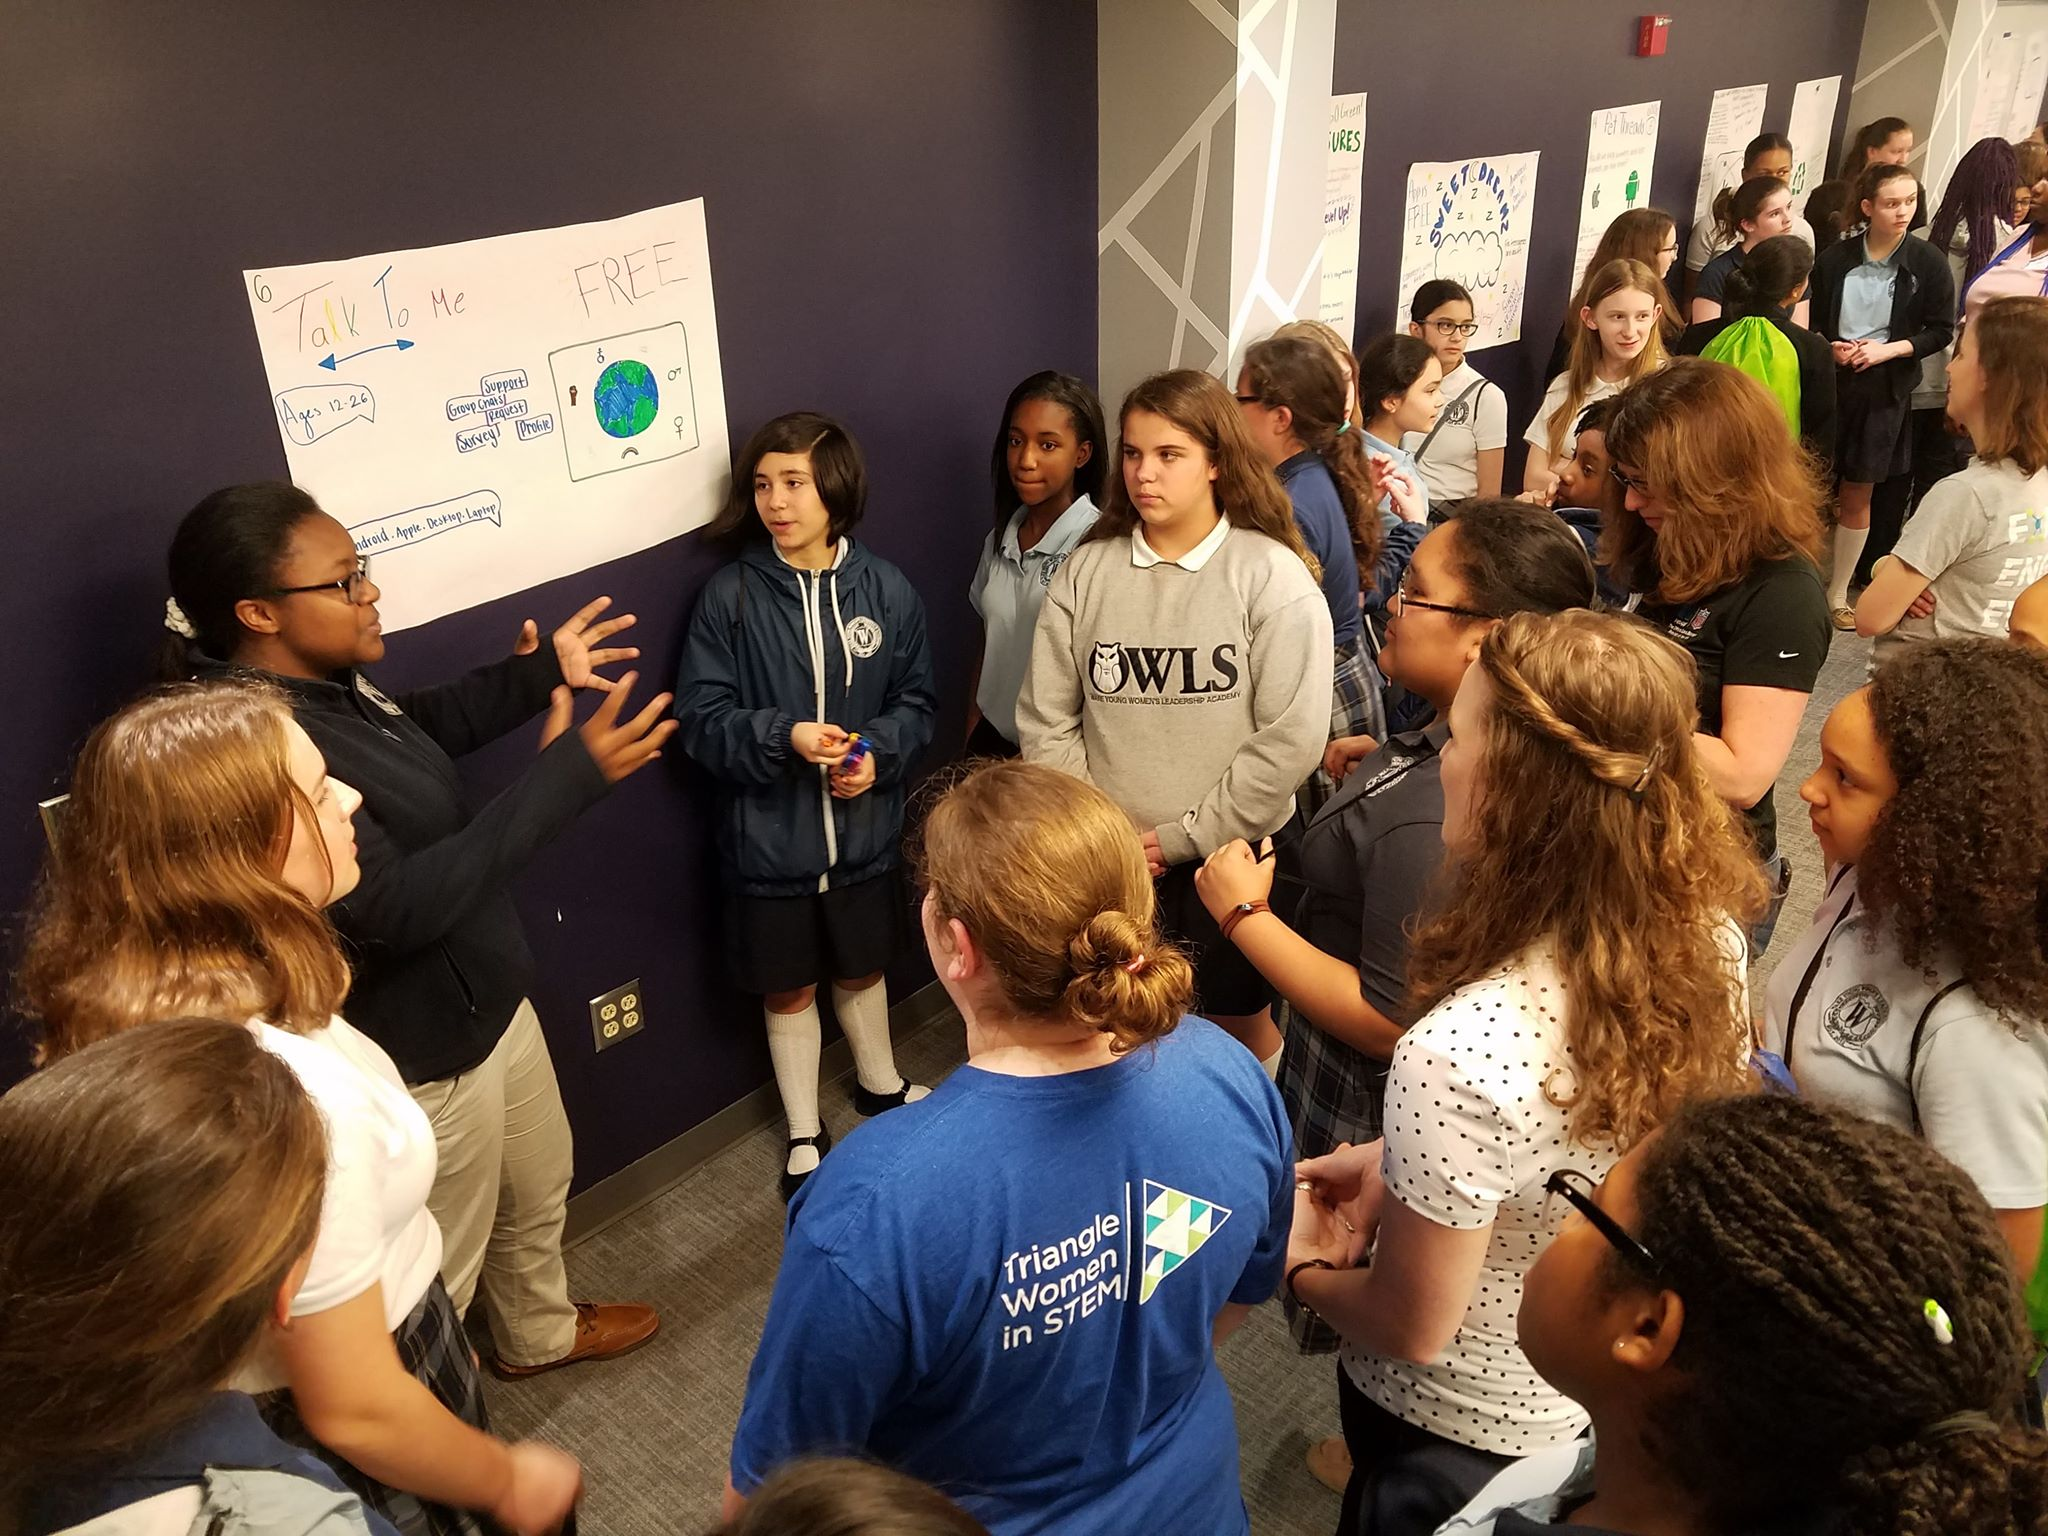 Girl presents poster with her app idea to a group of her peers